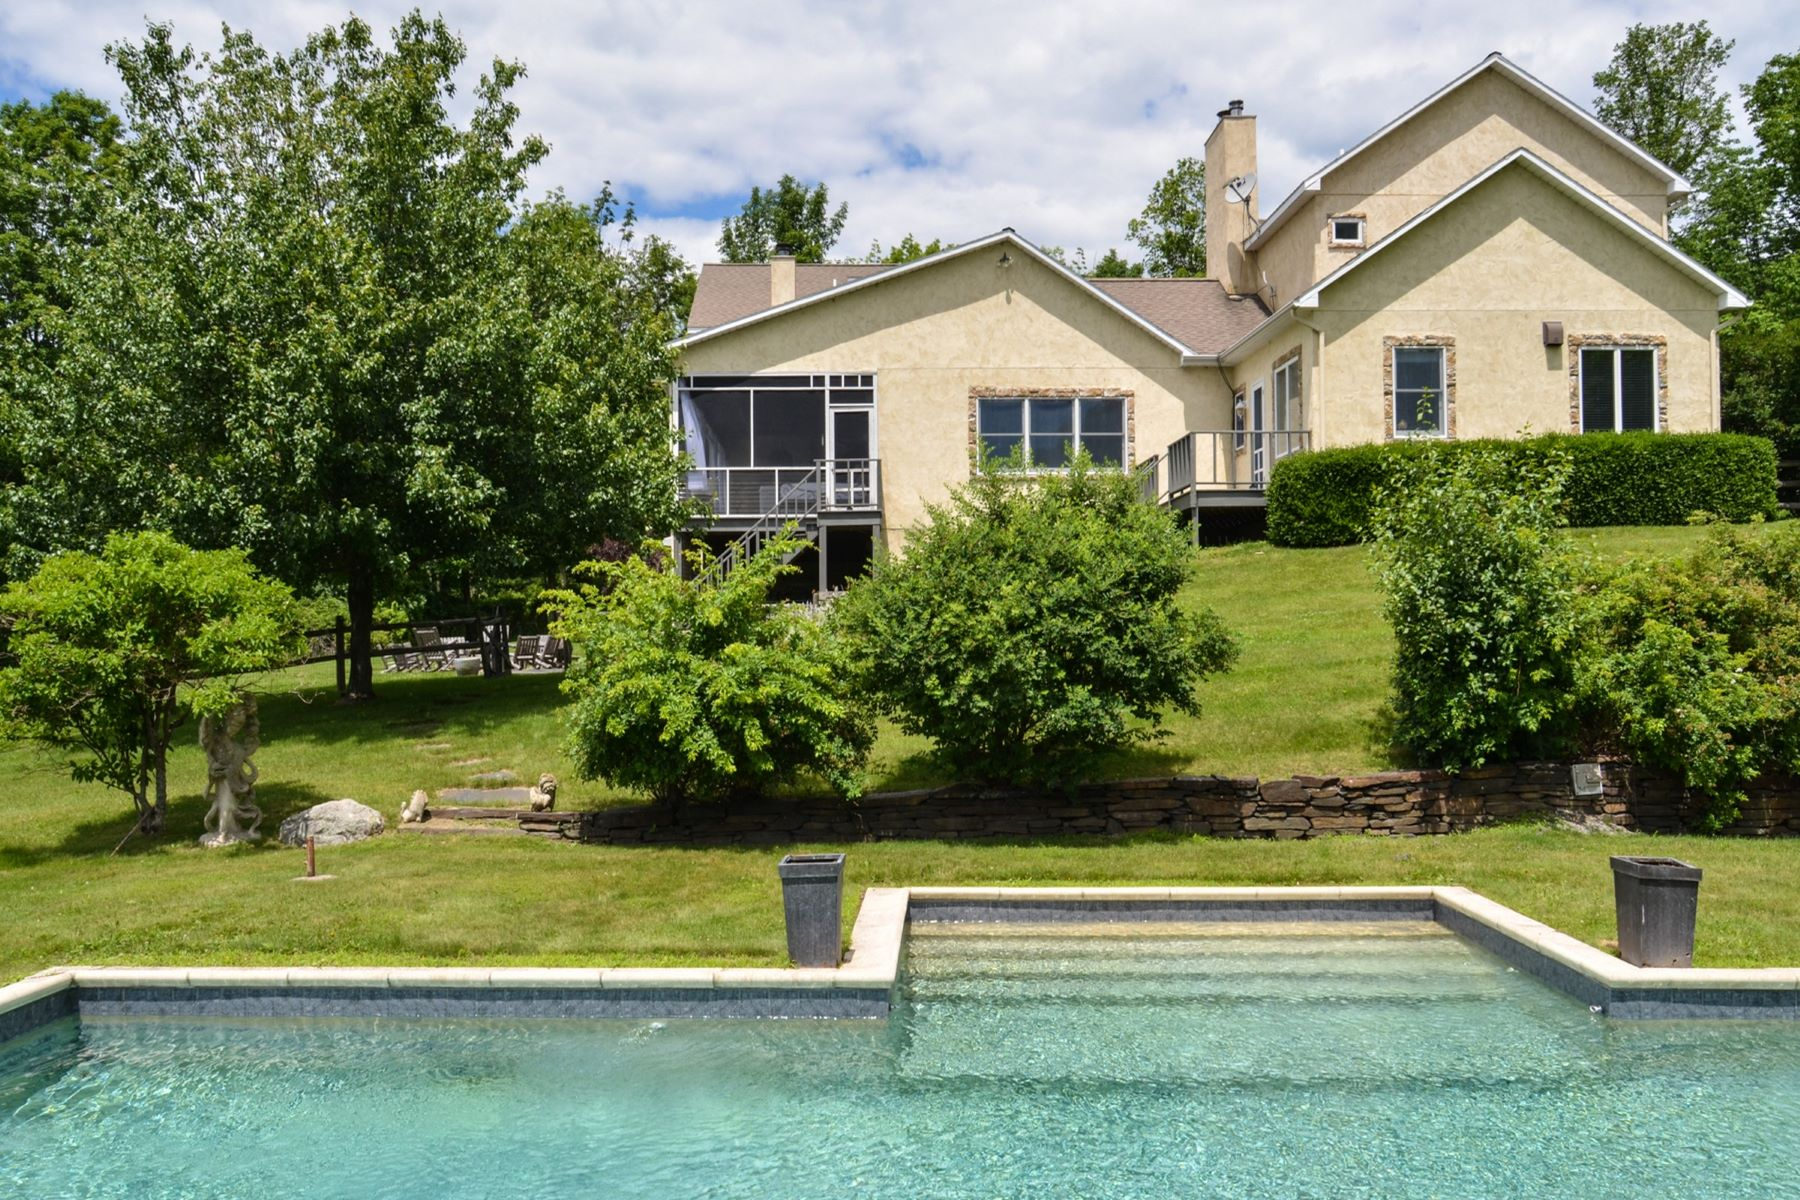 Maison unifamiliale pour l Vente à Grand in Every Way 599 Whippoorwill Rd Hillsdale, New York 12529 États-Unis